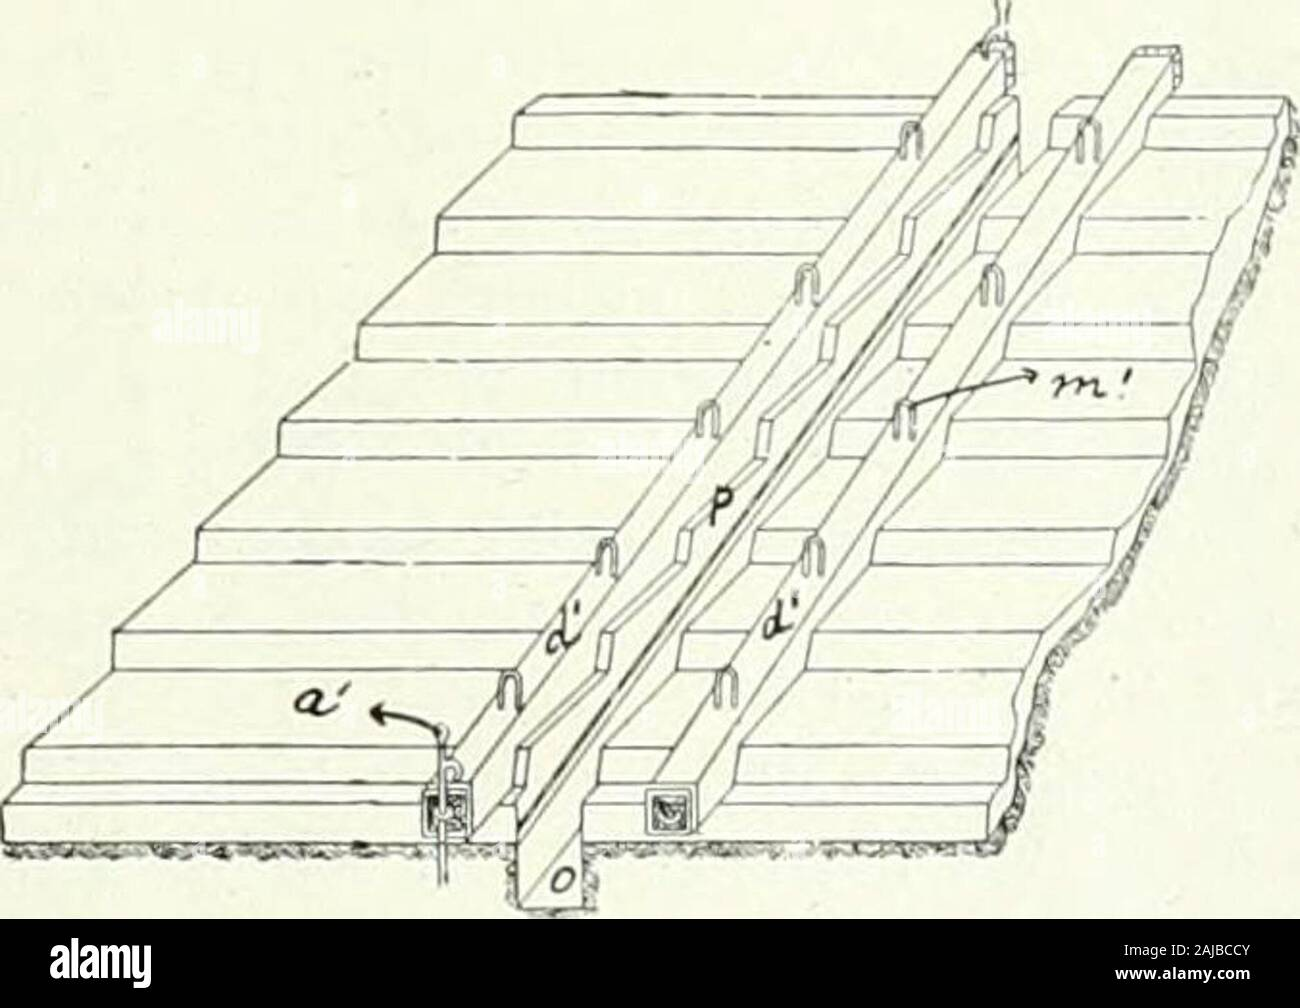 Engineering and Contracting . f morethan one row of slabs, such as two paral-lel rows, the slabs would be concreted thewhole way up the slope between two longnotched or stepped beams, the slabs beingseparated by a horizontal space. Fig. 3 shows a number of slabs in courseof construction. Two sets of woodenbeams d are fixed in position by means ofthe iron stakes a. Each set of large-sizedbeams d serves for the concrete of twoslabs at a time. In order to keep the Fig, 2.—Showing Two Lowest Steps Con-creted, and Covered by Boards. shown ready to lay the sheet of expandedmetal reinforcement in the Stock Photo